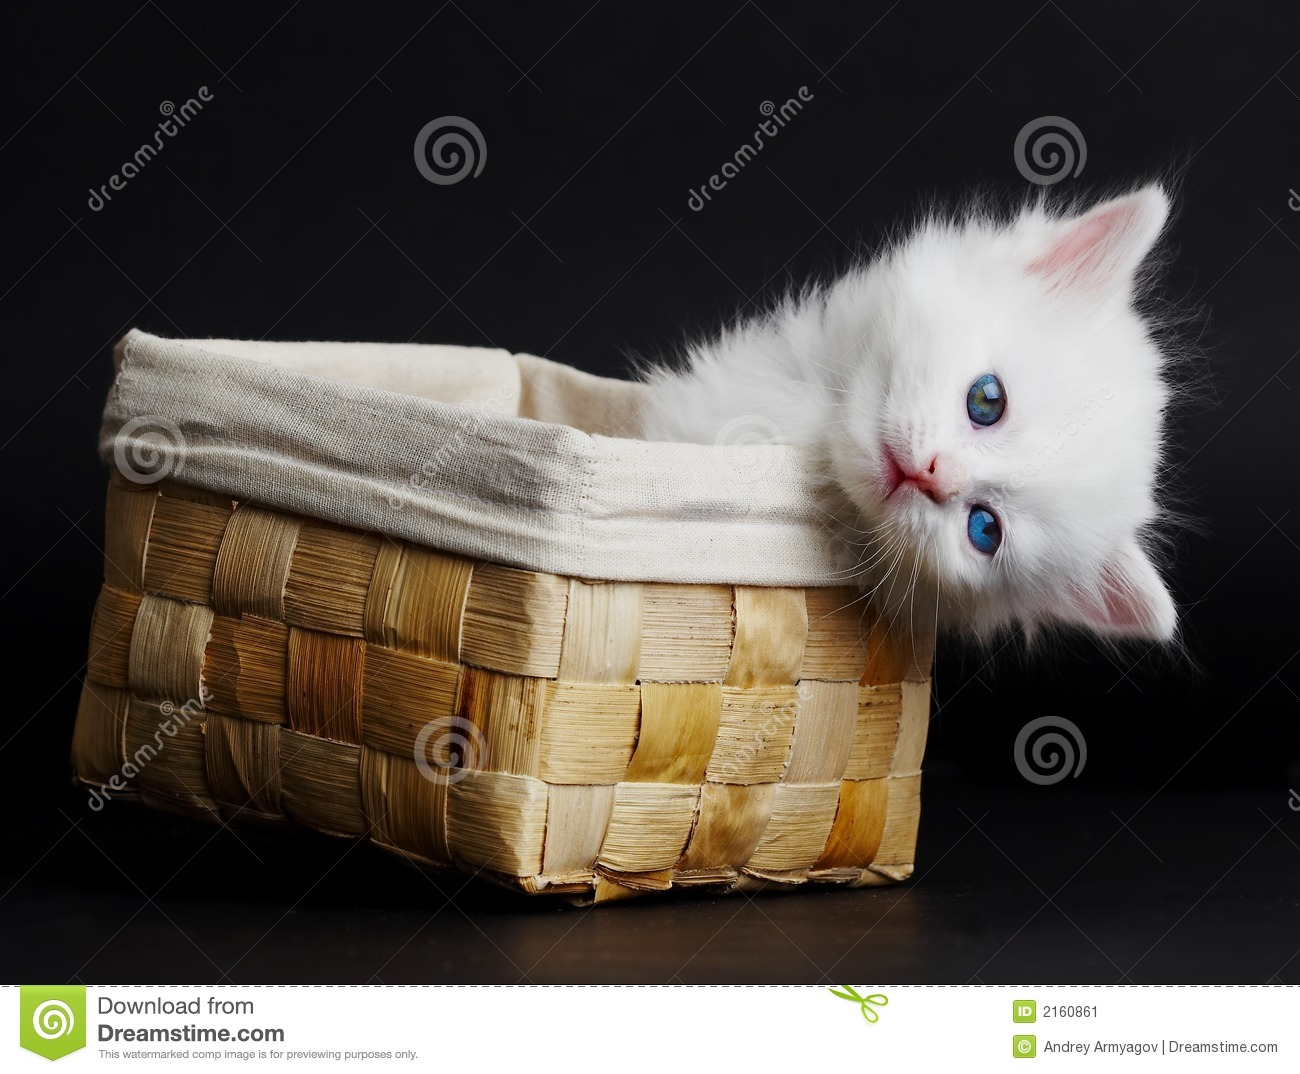 White Kitten In A Basket. Stock Image - Image: 2160861